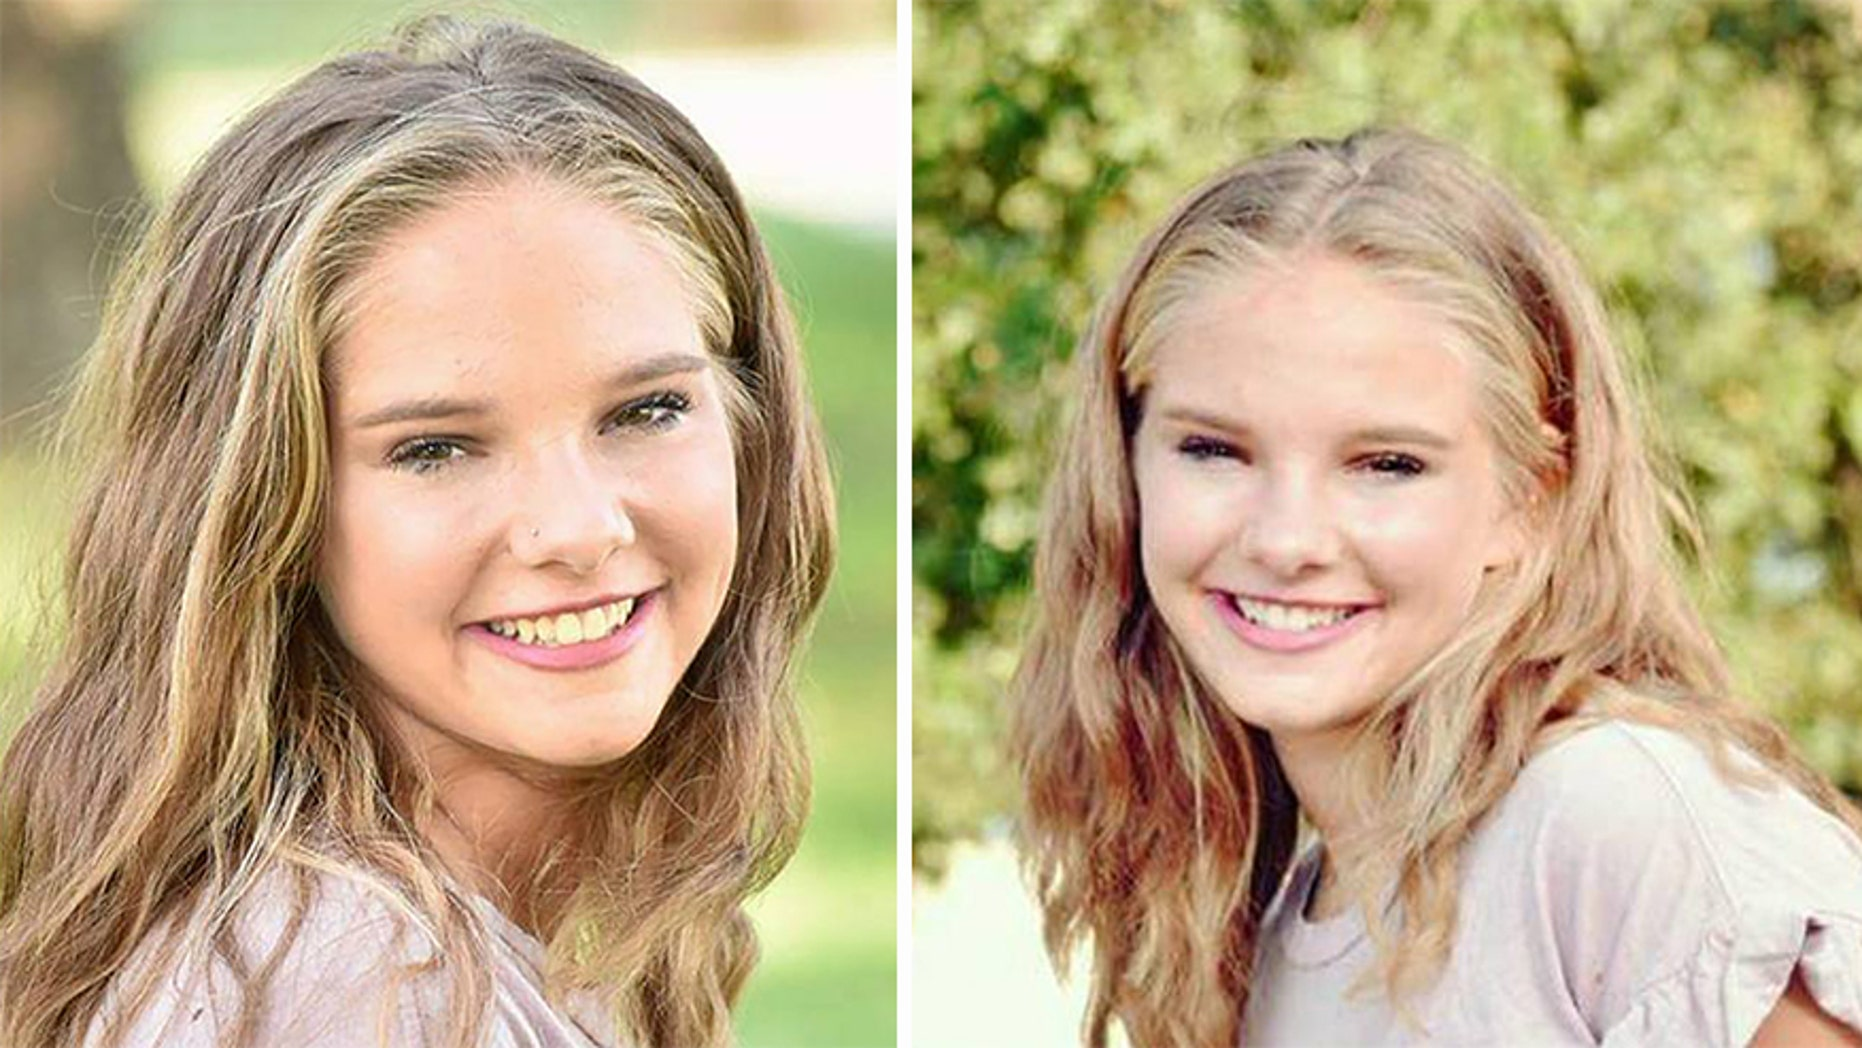 Heaven Ray Cox, 15, was found safe Thursday, her mother said on Facebook.